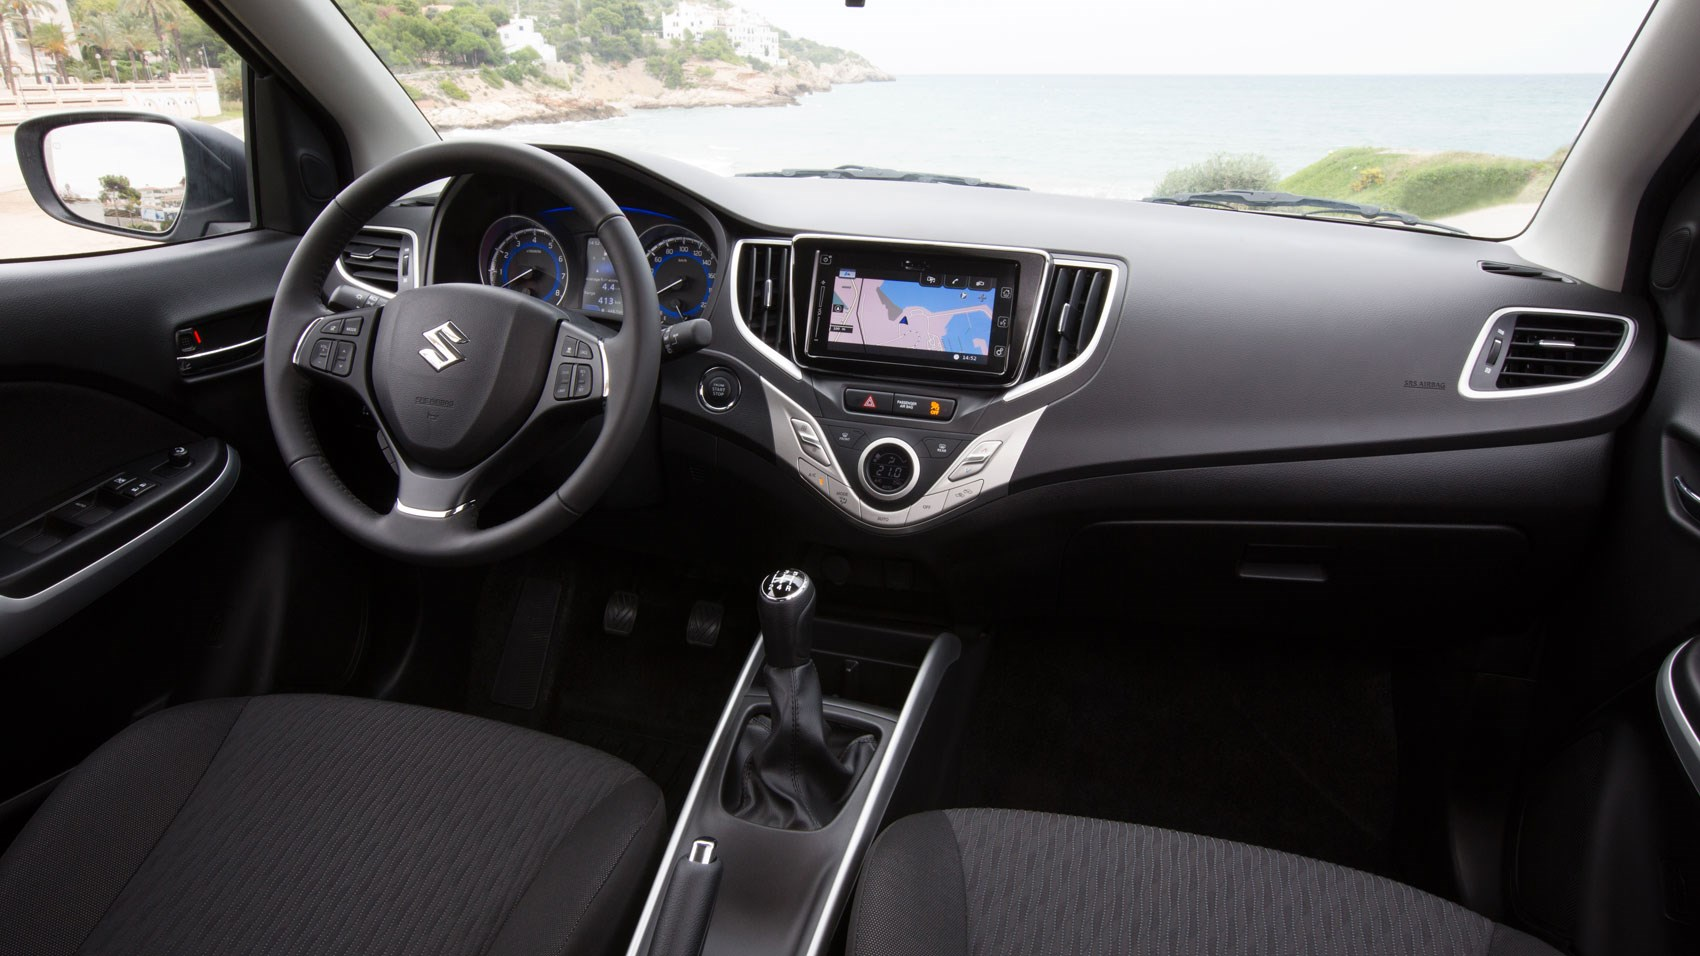 ... Pricing is yet to be confirmed for the Baleno at the time of writing ...